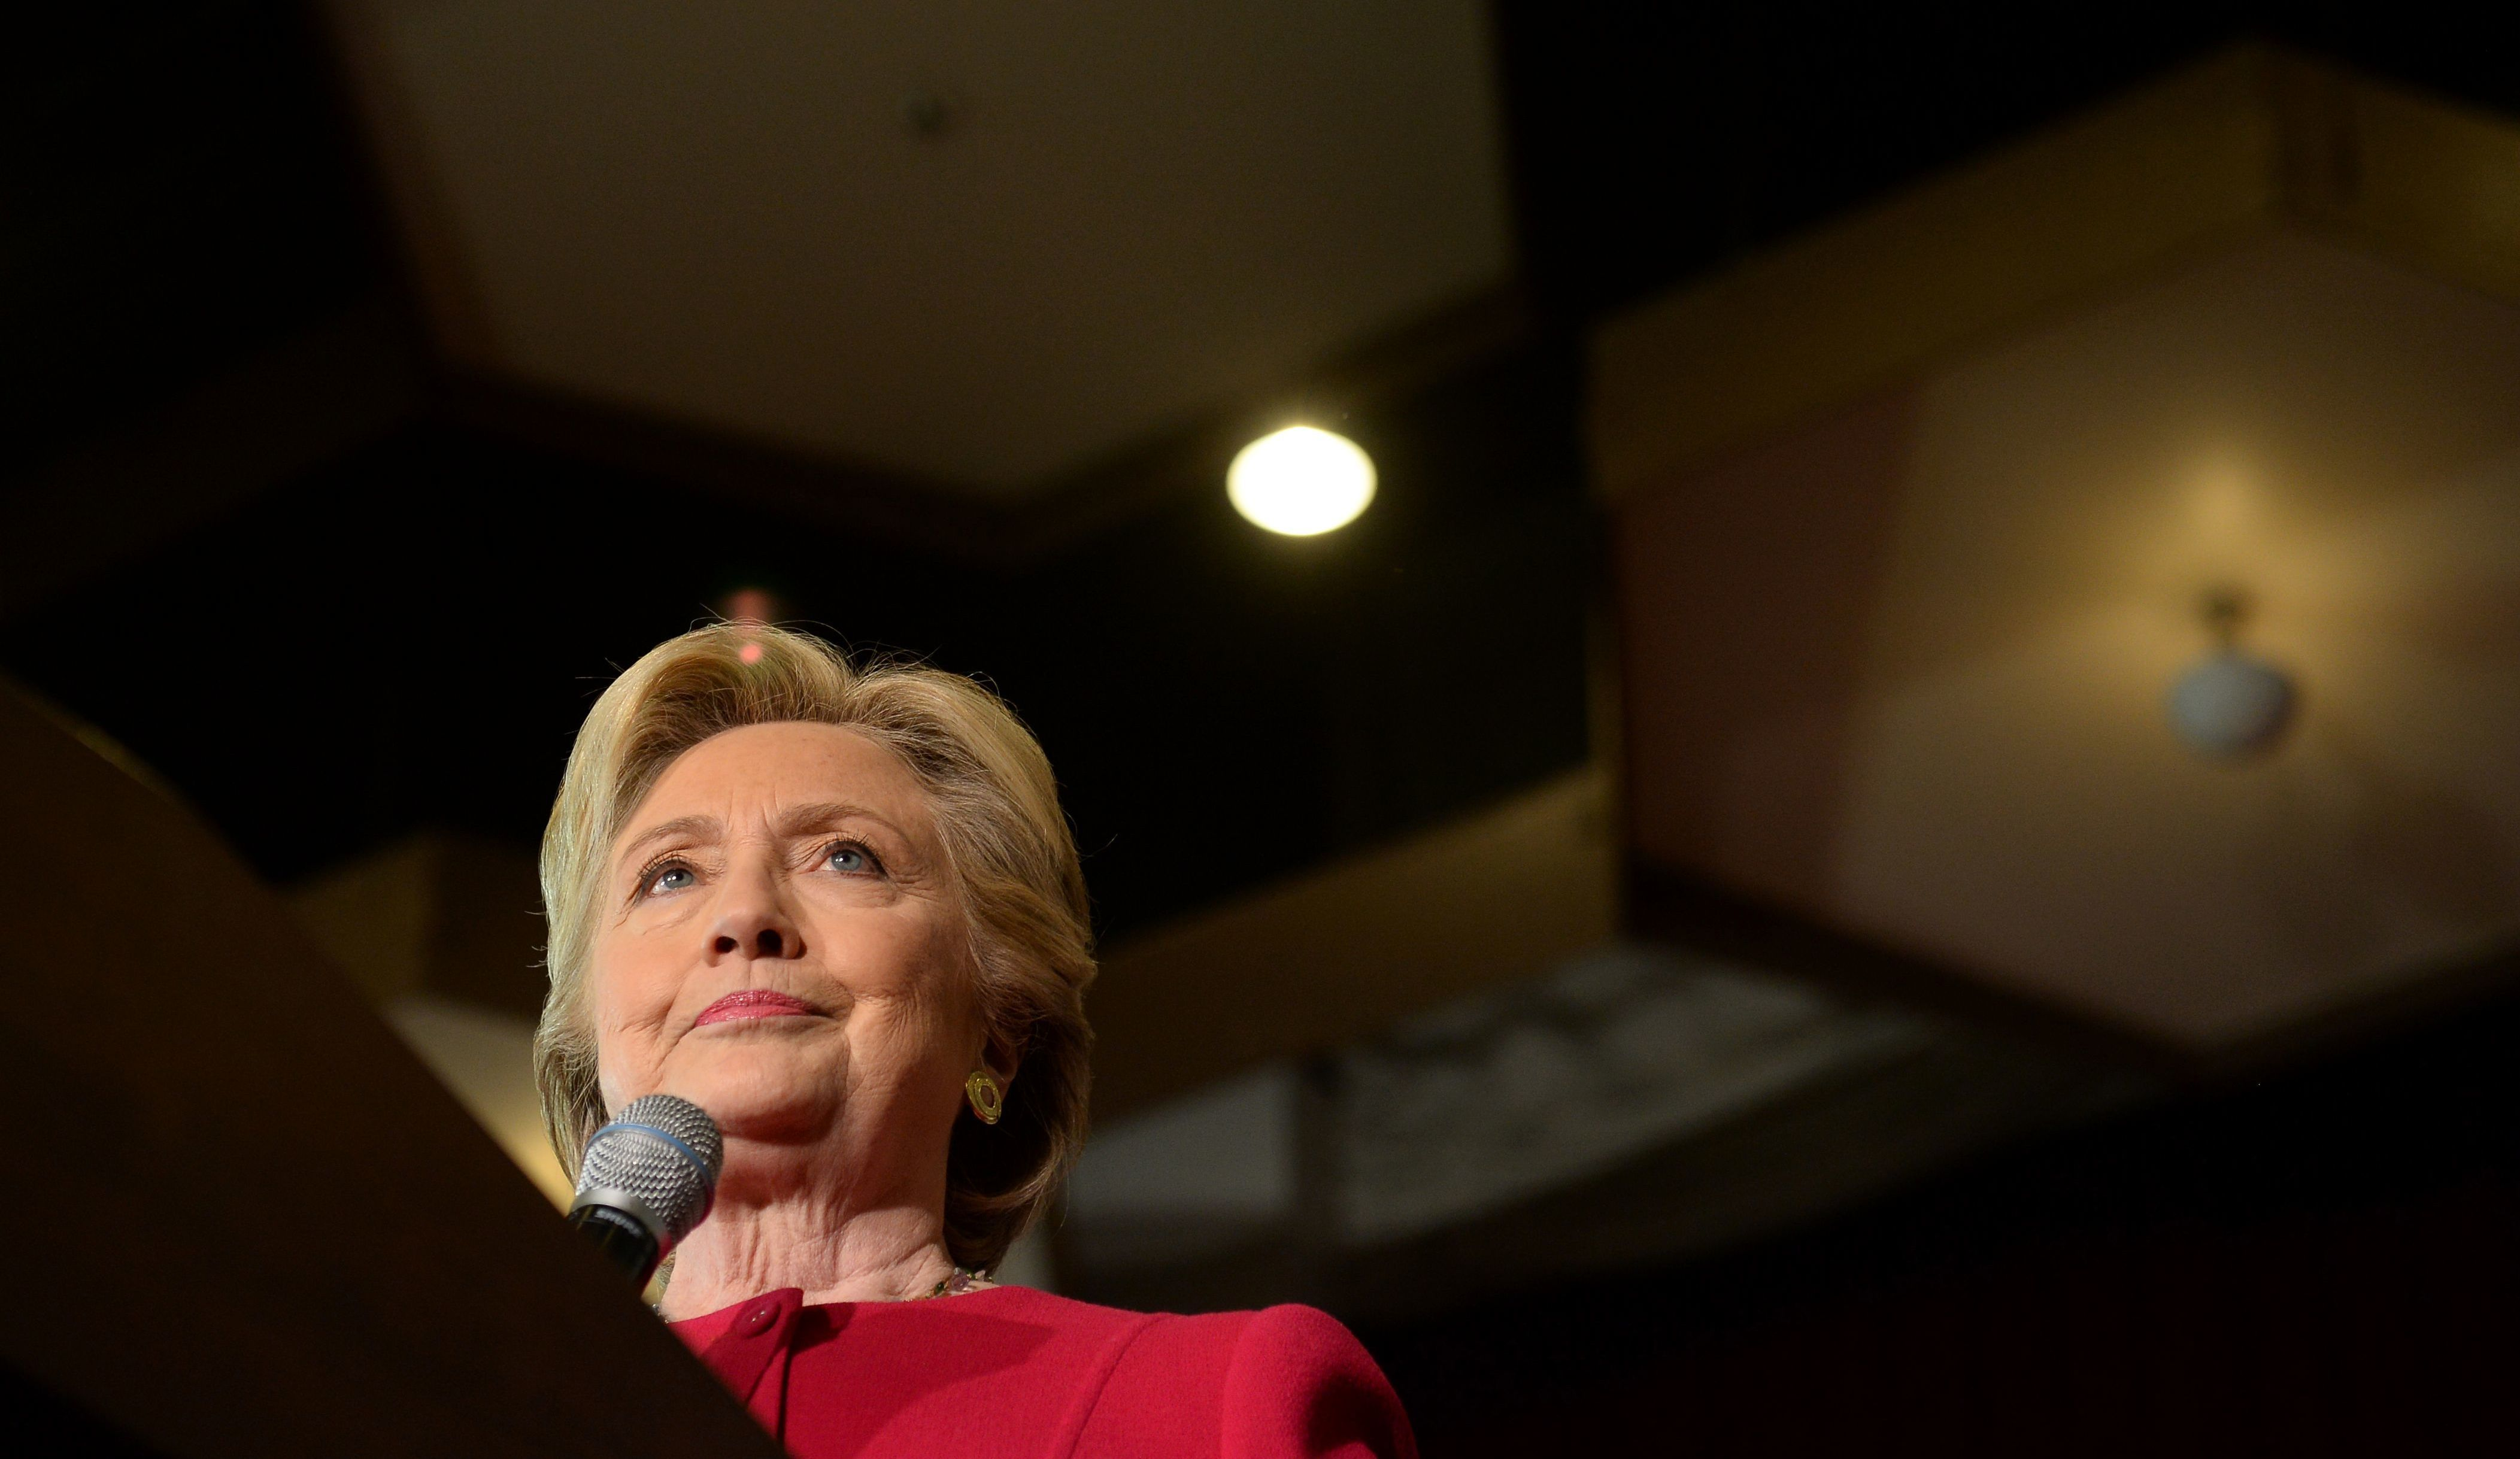 Hillary Clinton addresses an early vote rally at Broward College in Coconut Creek, Fla. on Tuesday. WikiLeaks continues to release emails  hacked from the personal account of Clinton's campaign chairman John Podesta.